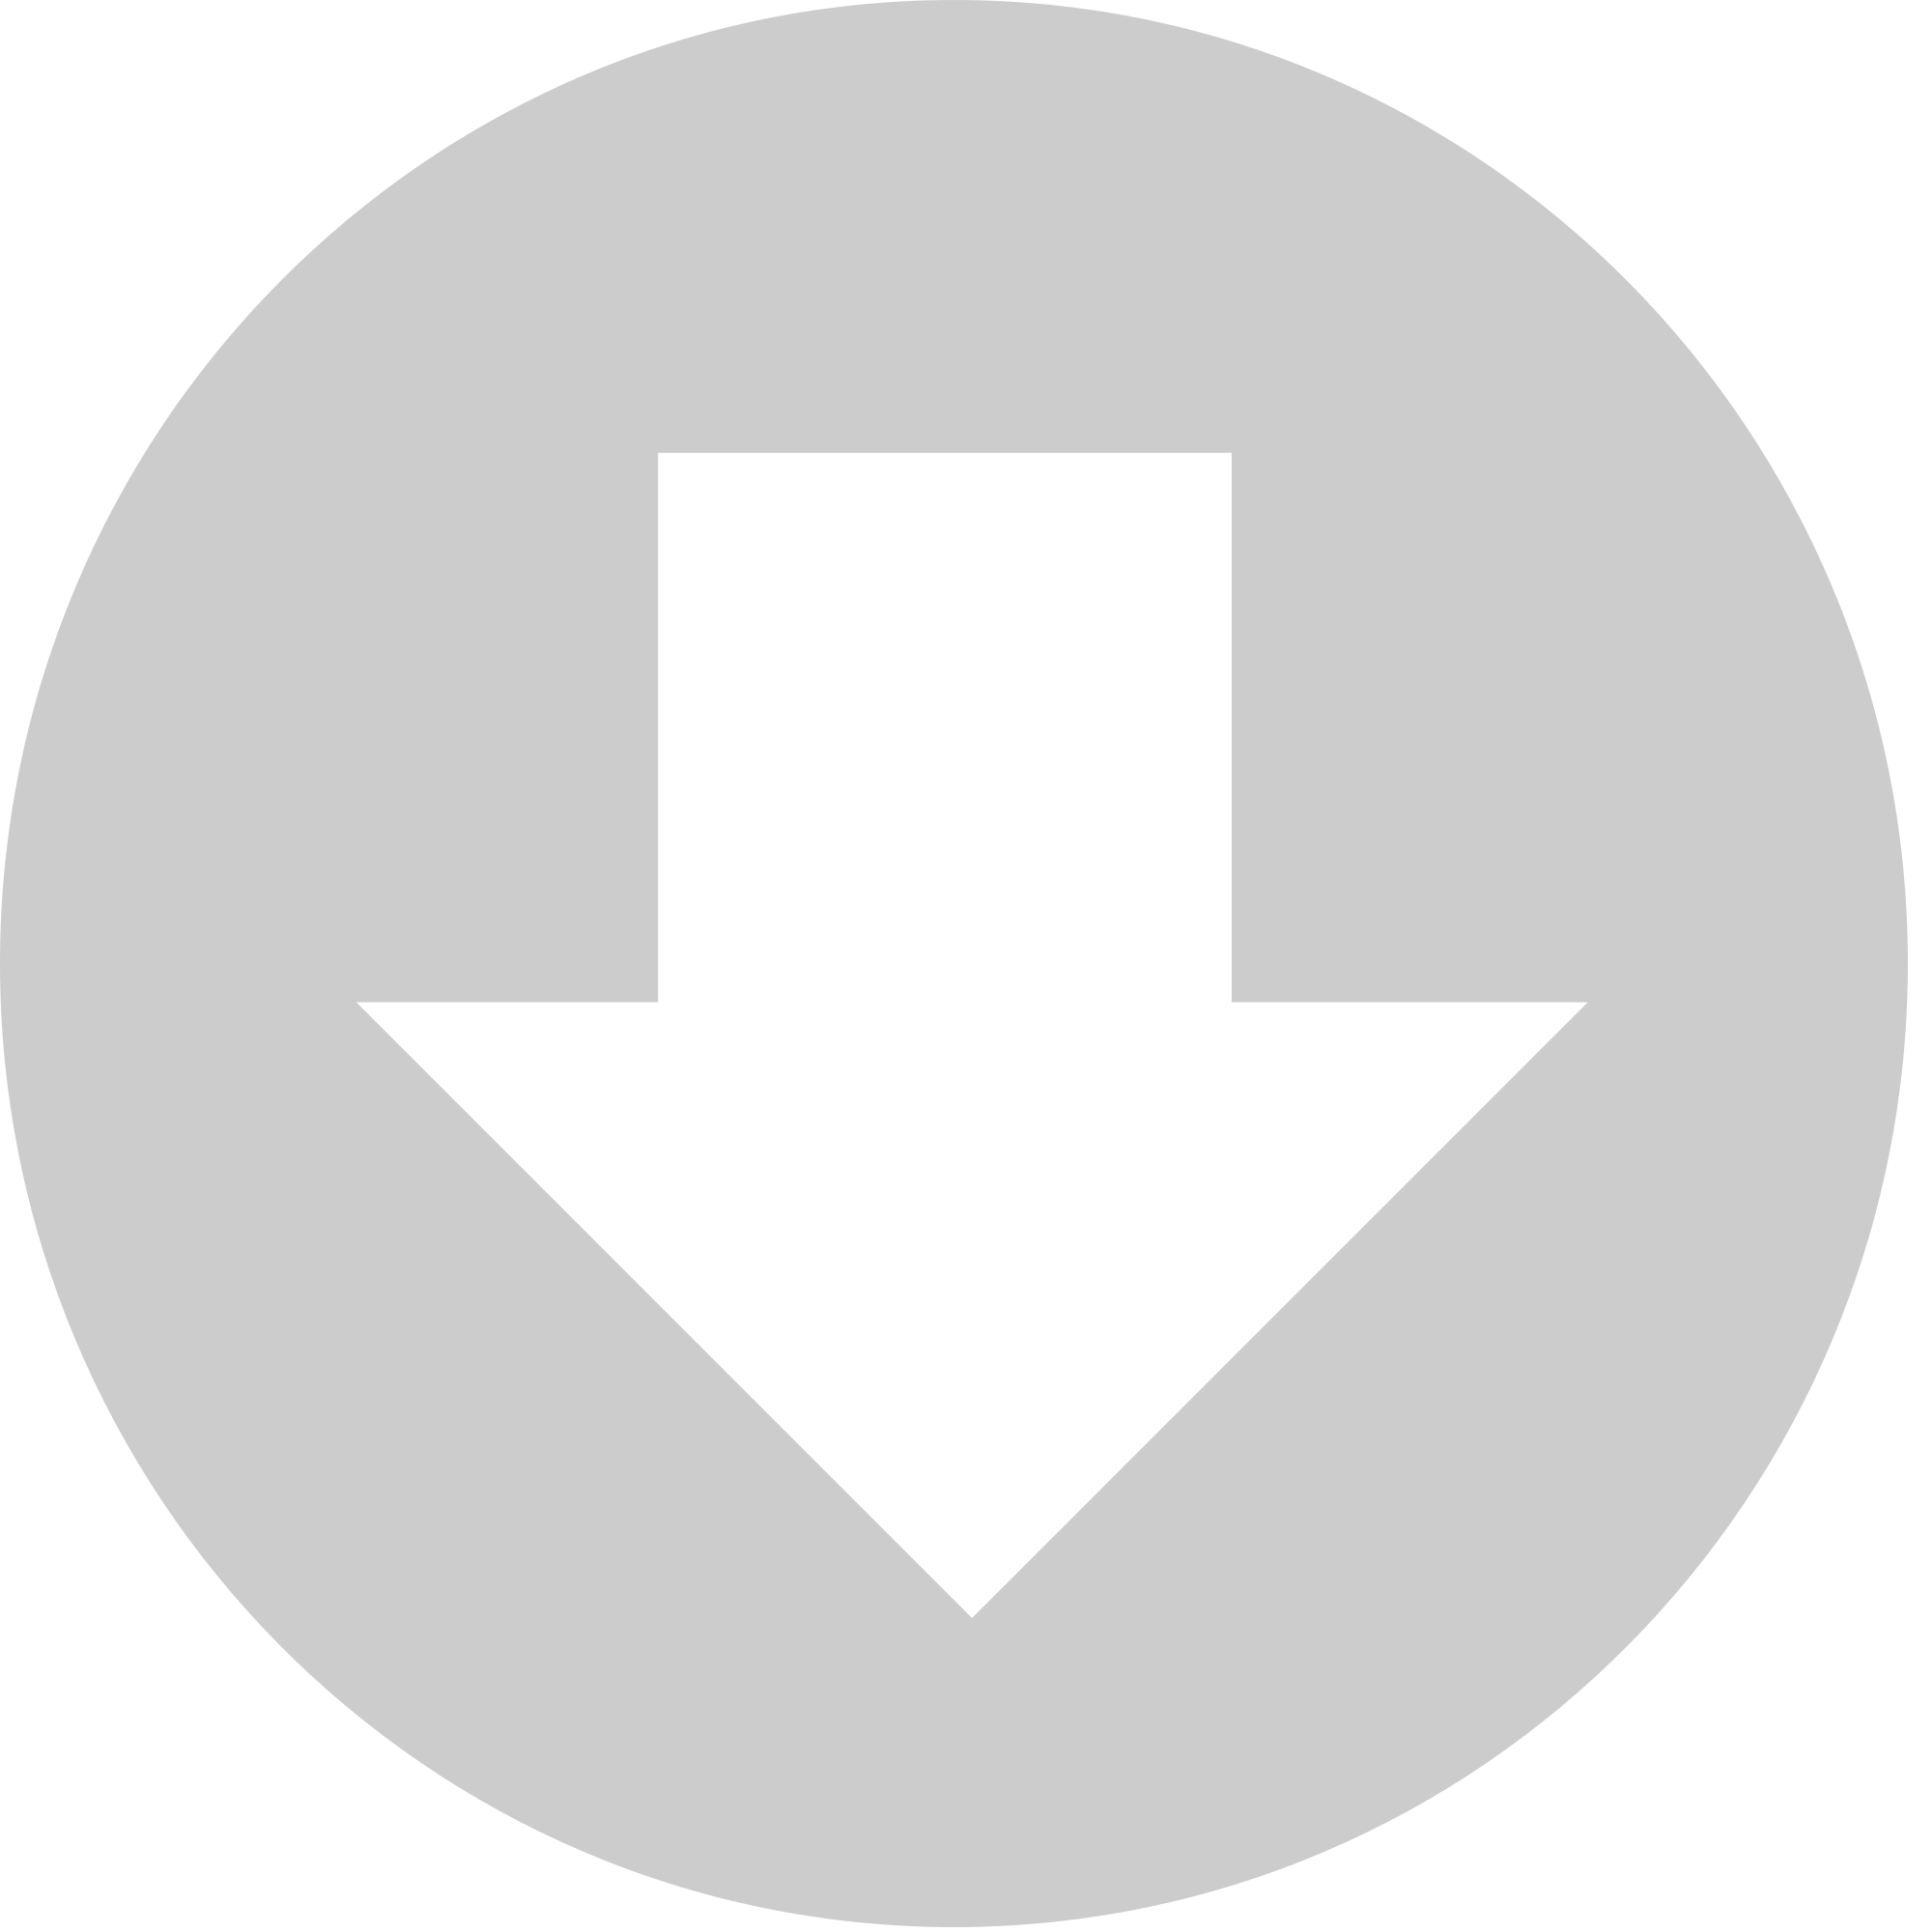 Free White Down Arrow Png, Download Free Clip Art, Free Clip.